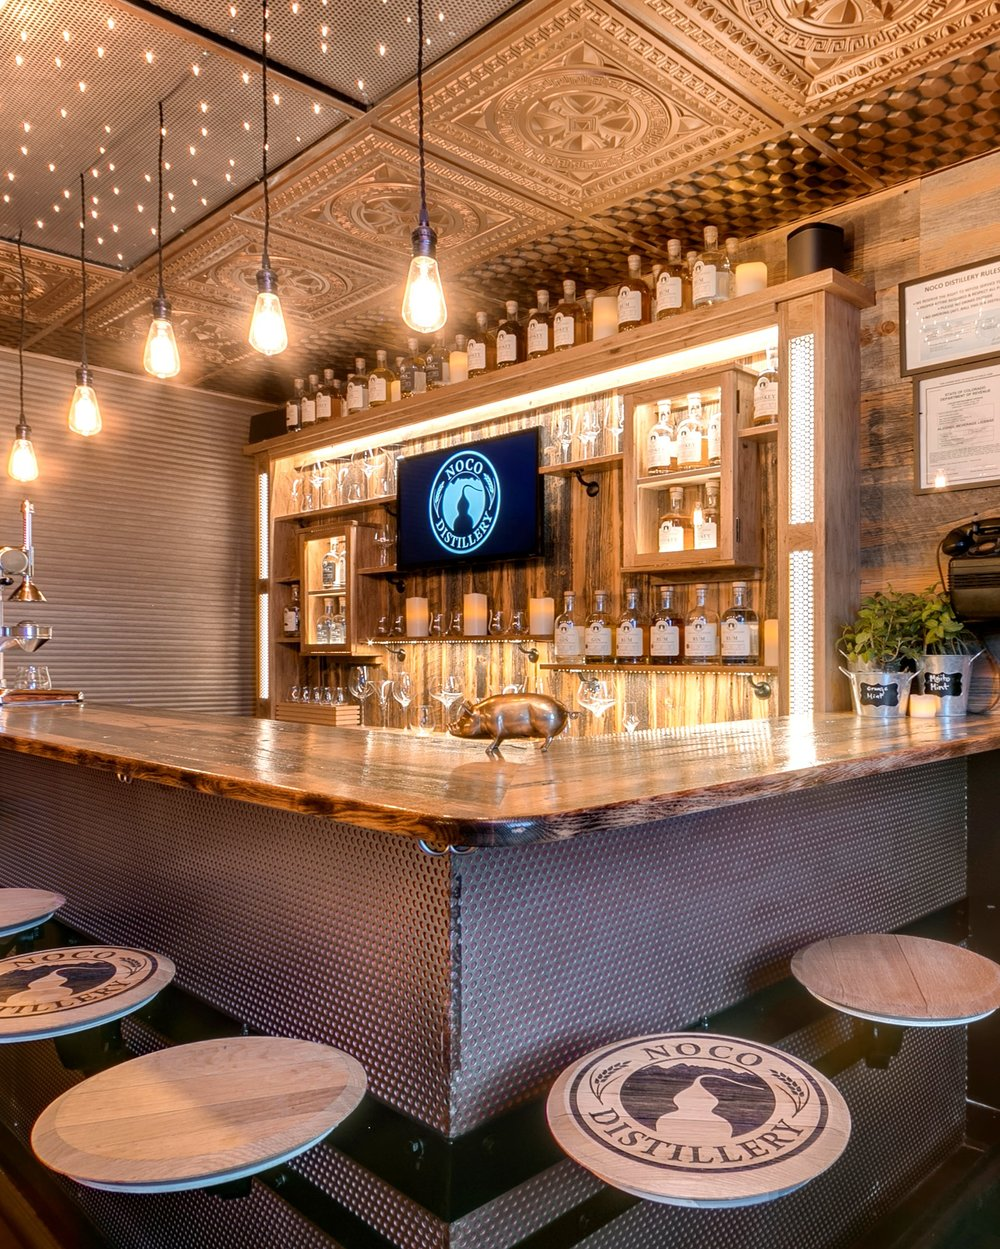 noco-distillery-speakeasy-bar-visit-fort-collins-colorado-cool.jpg